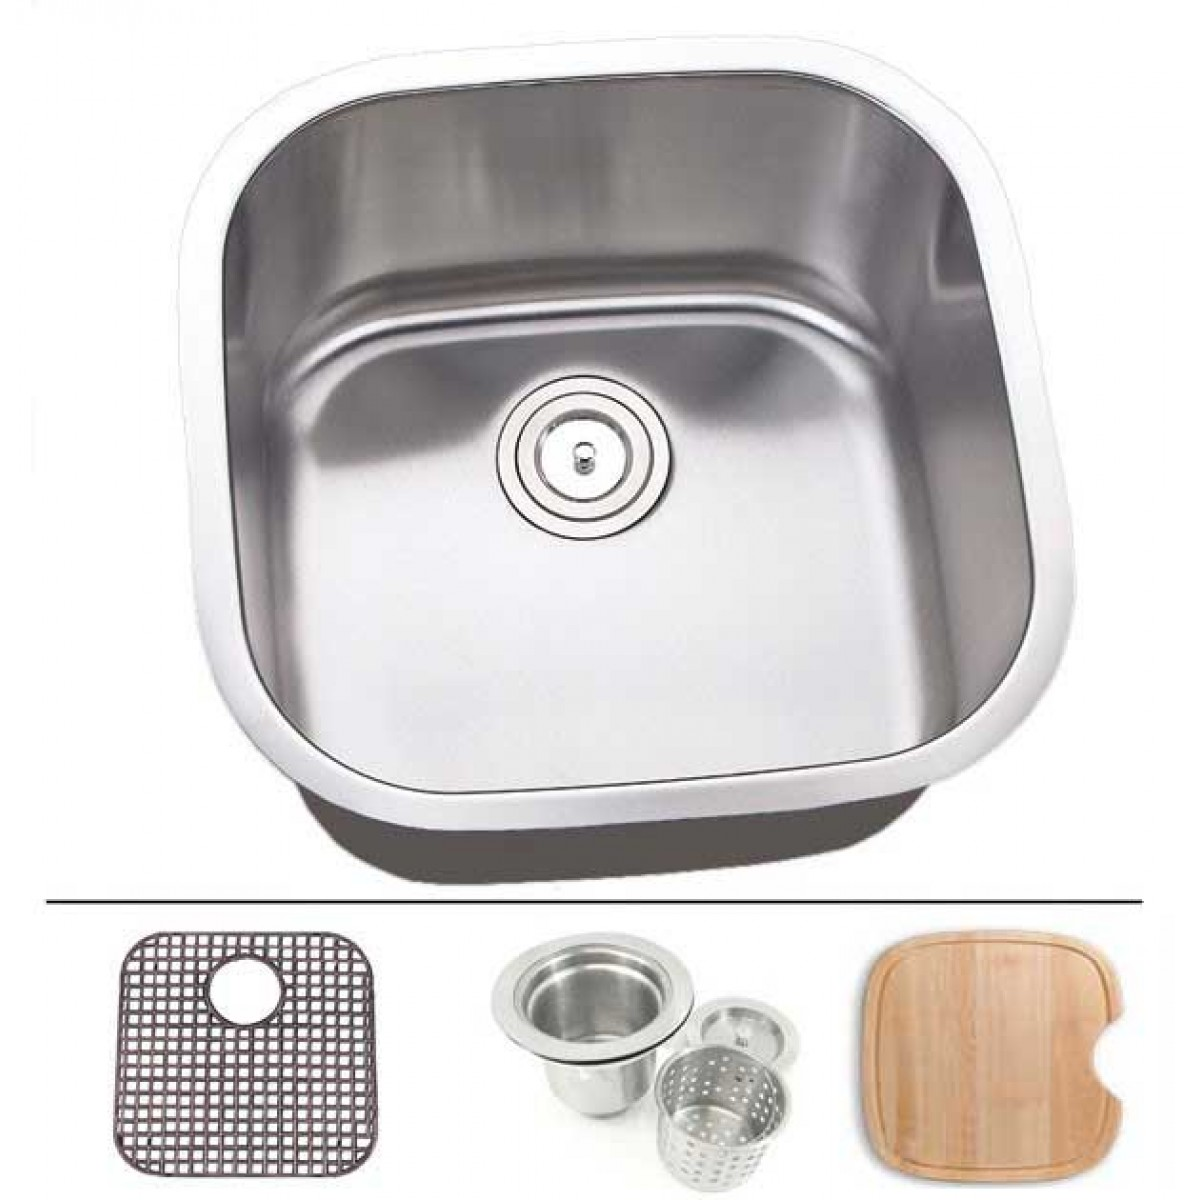 20 inch stainless steel undermount single bowl kitchen sink   16 gauge free accessories 20 inch stainless steel undermount single bowl kitchen sink   16      rh   emoderndecor com